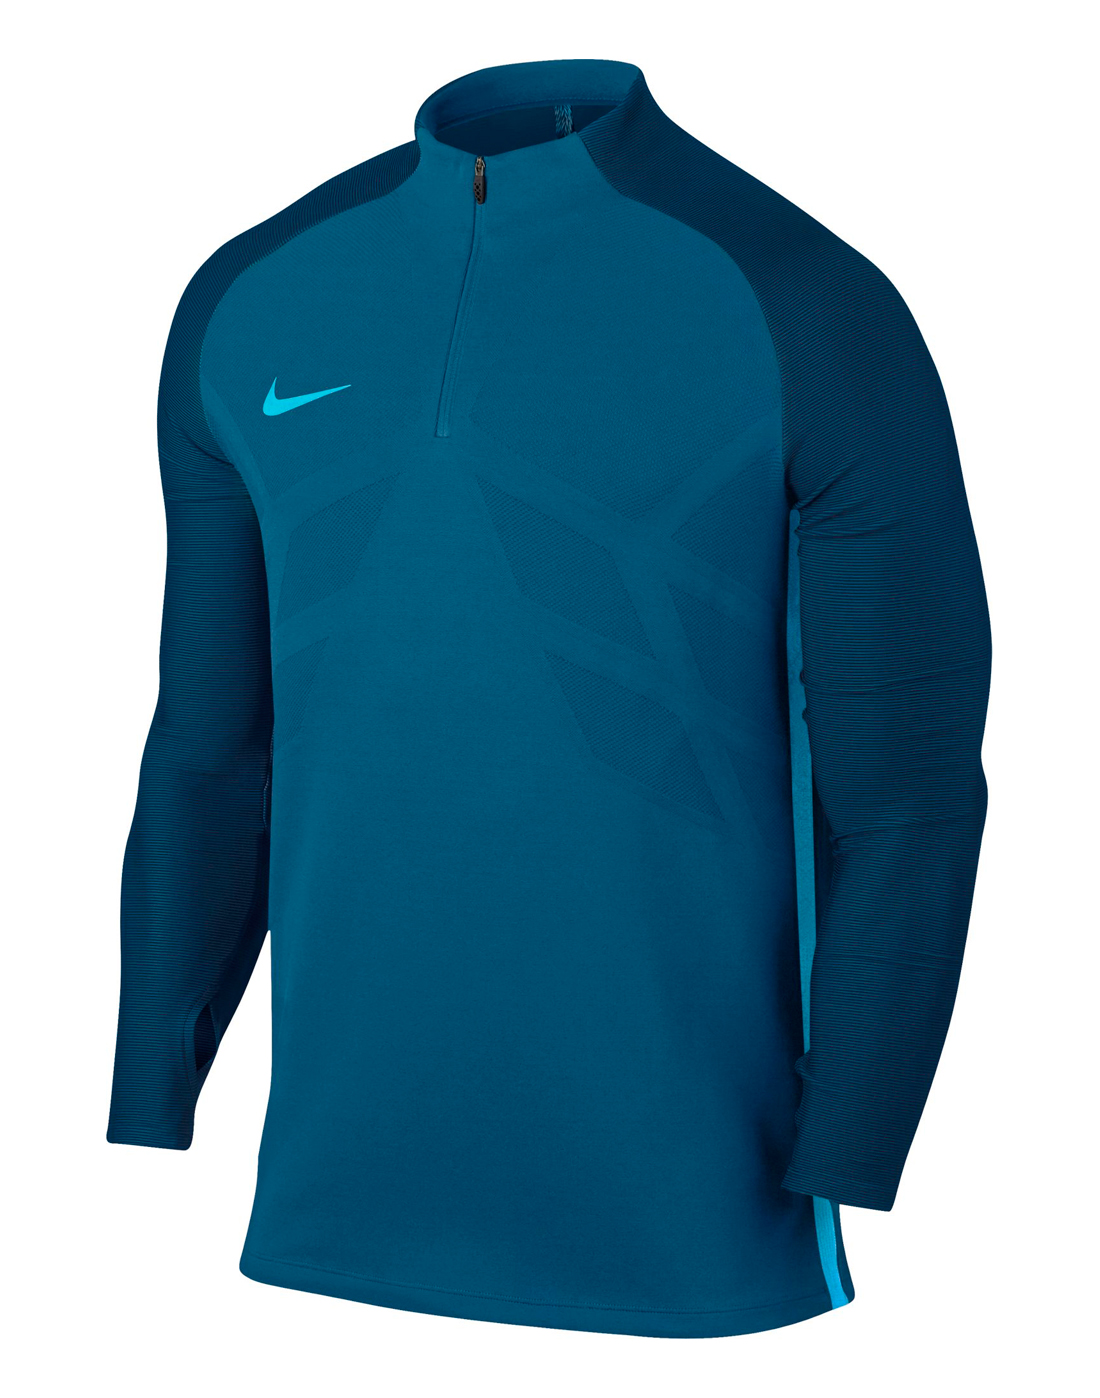 b6705168c Nike Adult Aeroswift Strike 1/4 Zip | Life Style Sports